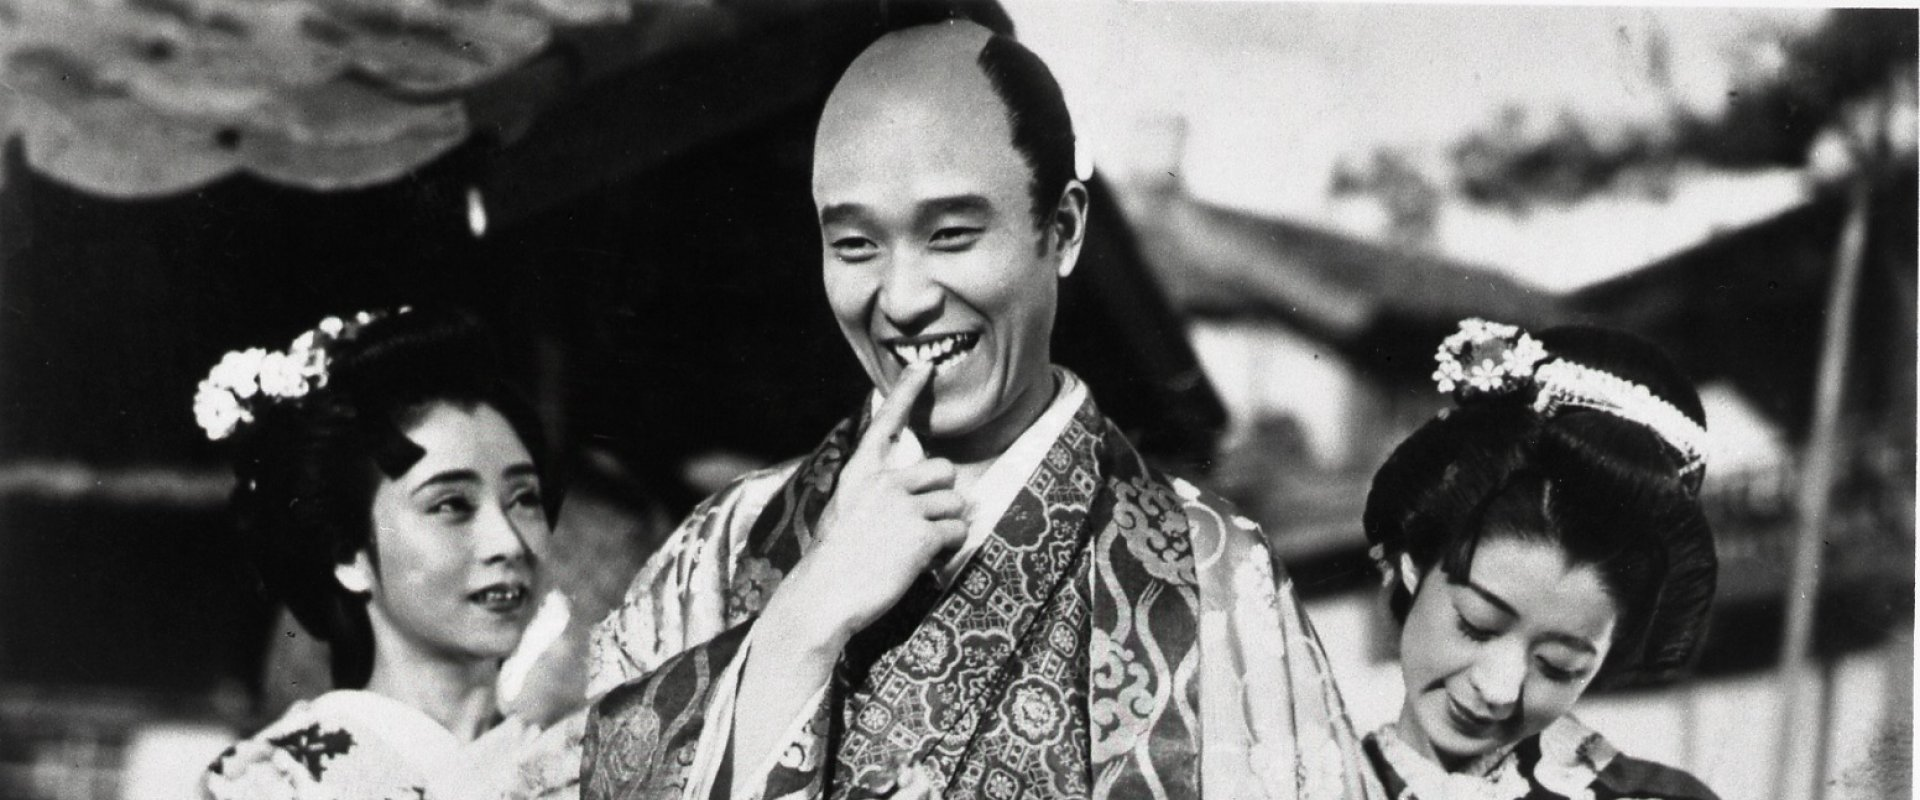 Man in traditional Japanese dress bites his finger in a bashful gesture.